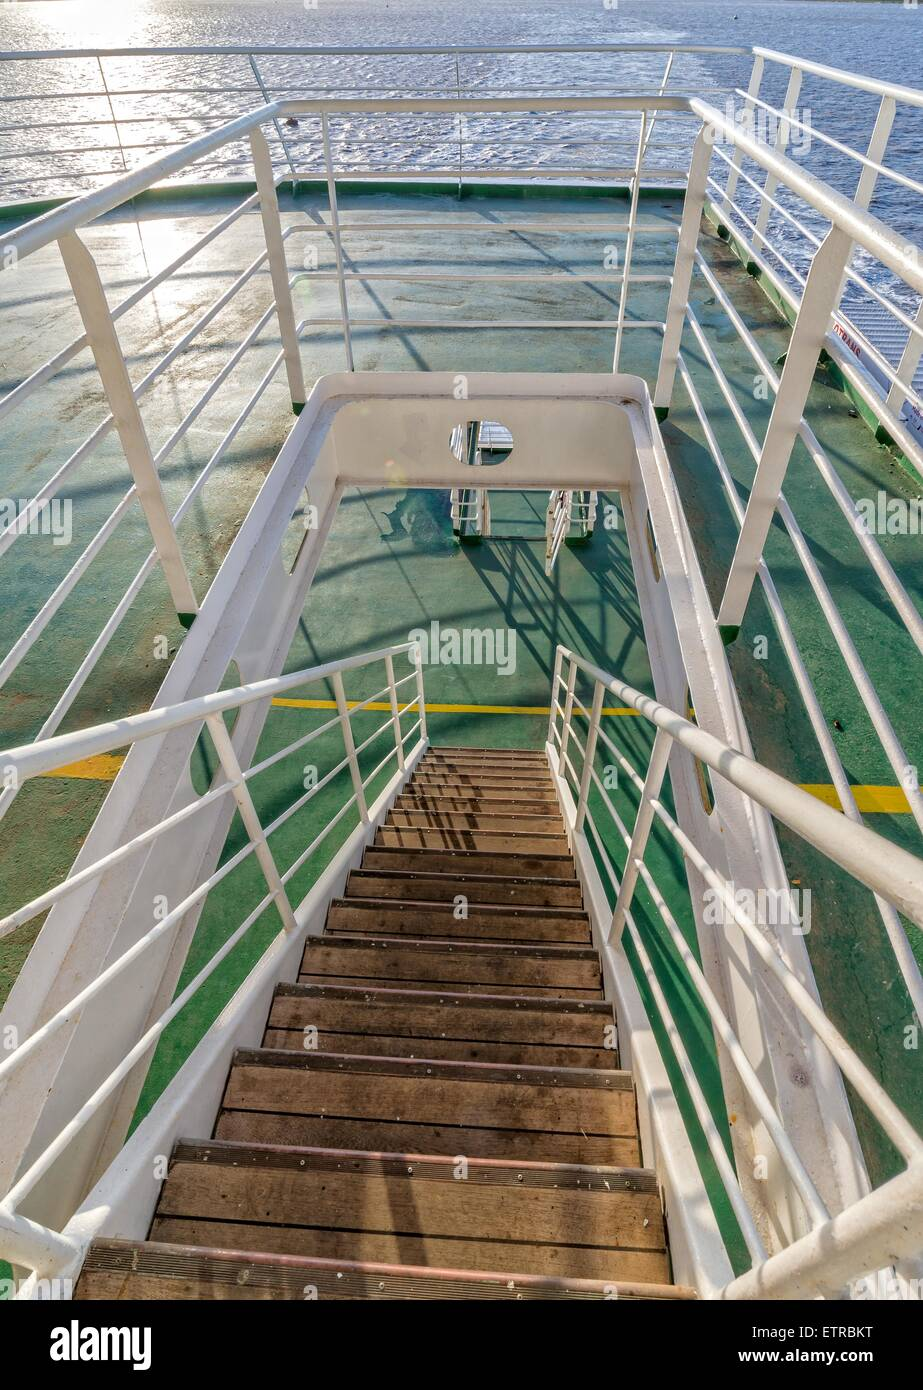 Flights of stairs on board a ship leading down to other decks. - Stock Image